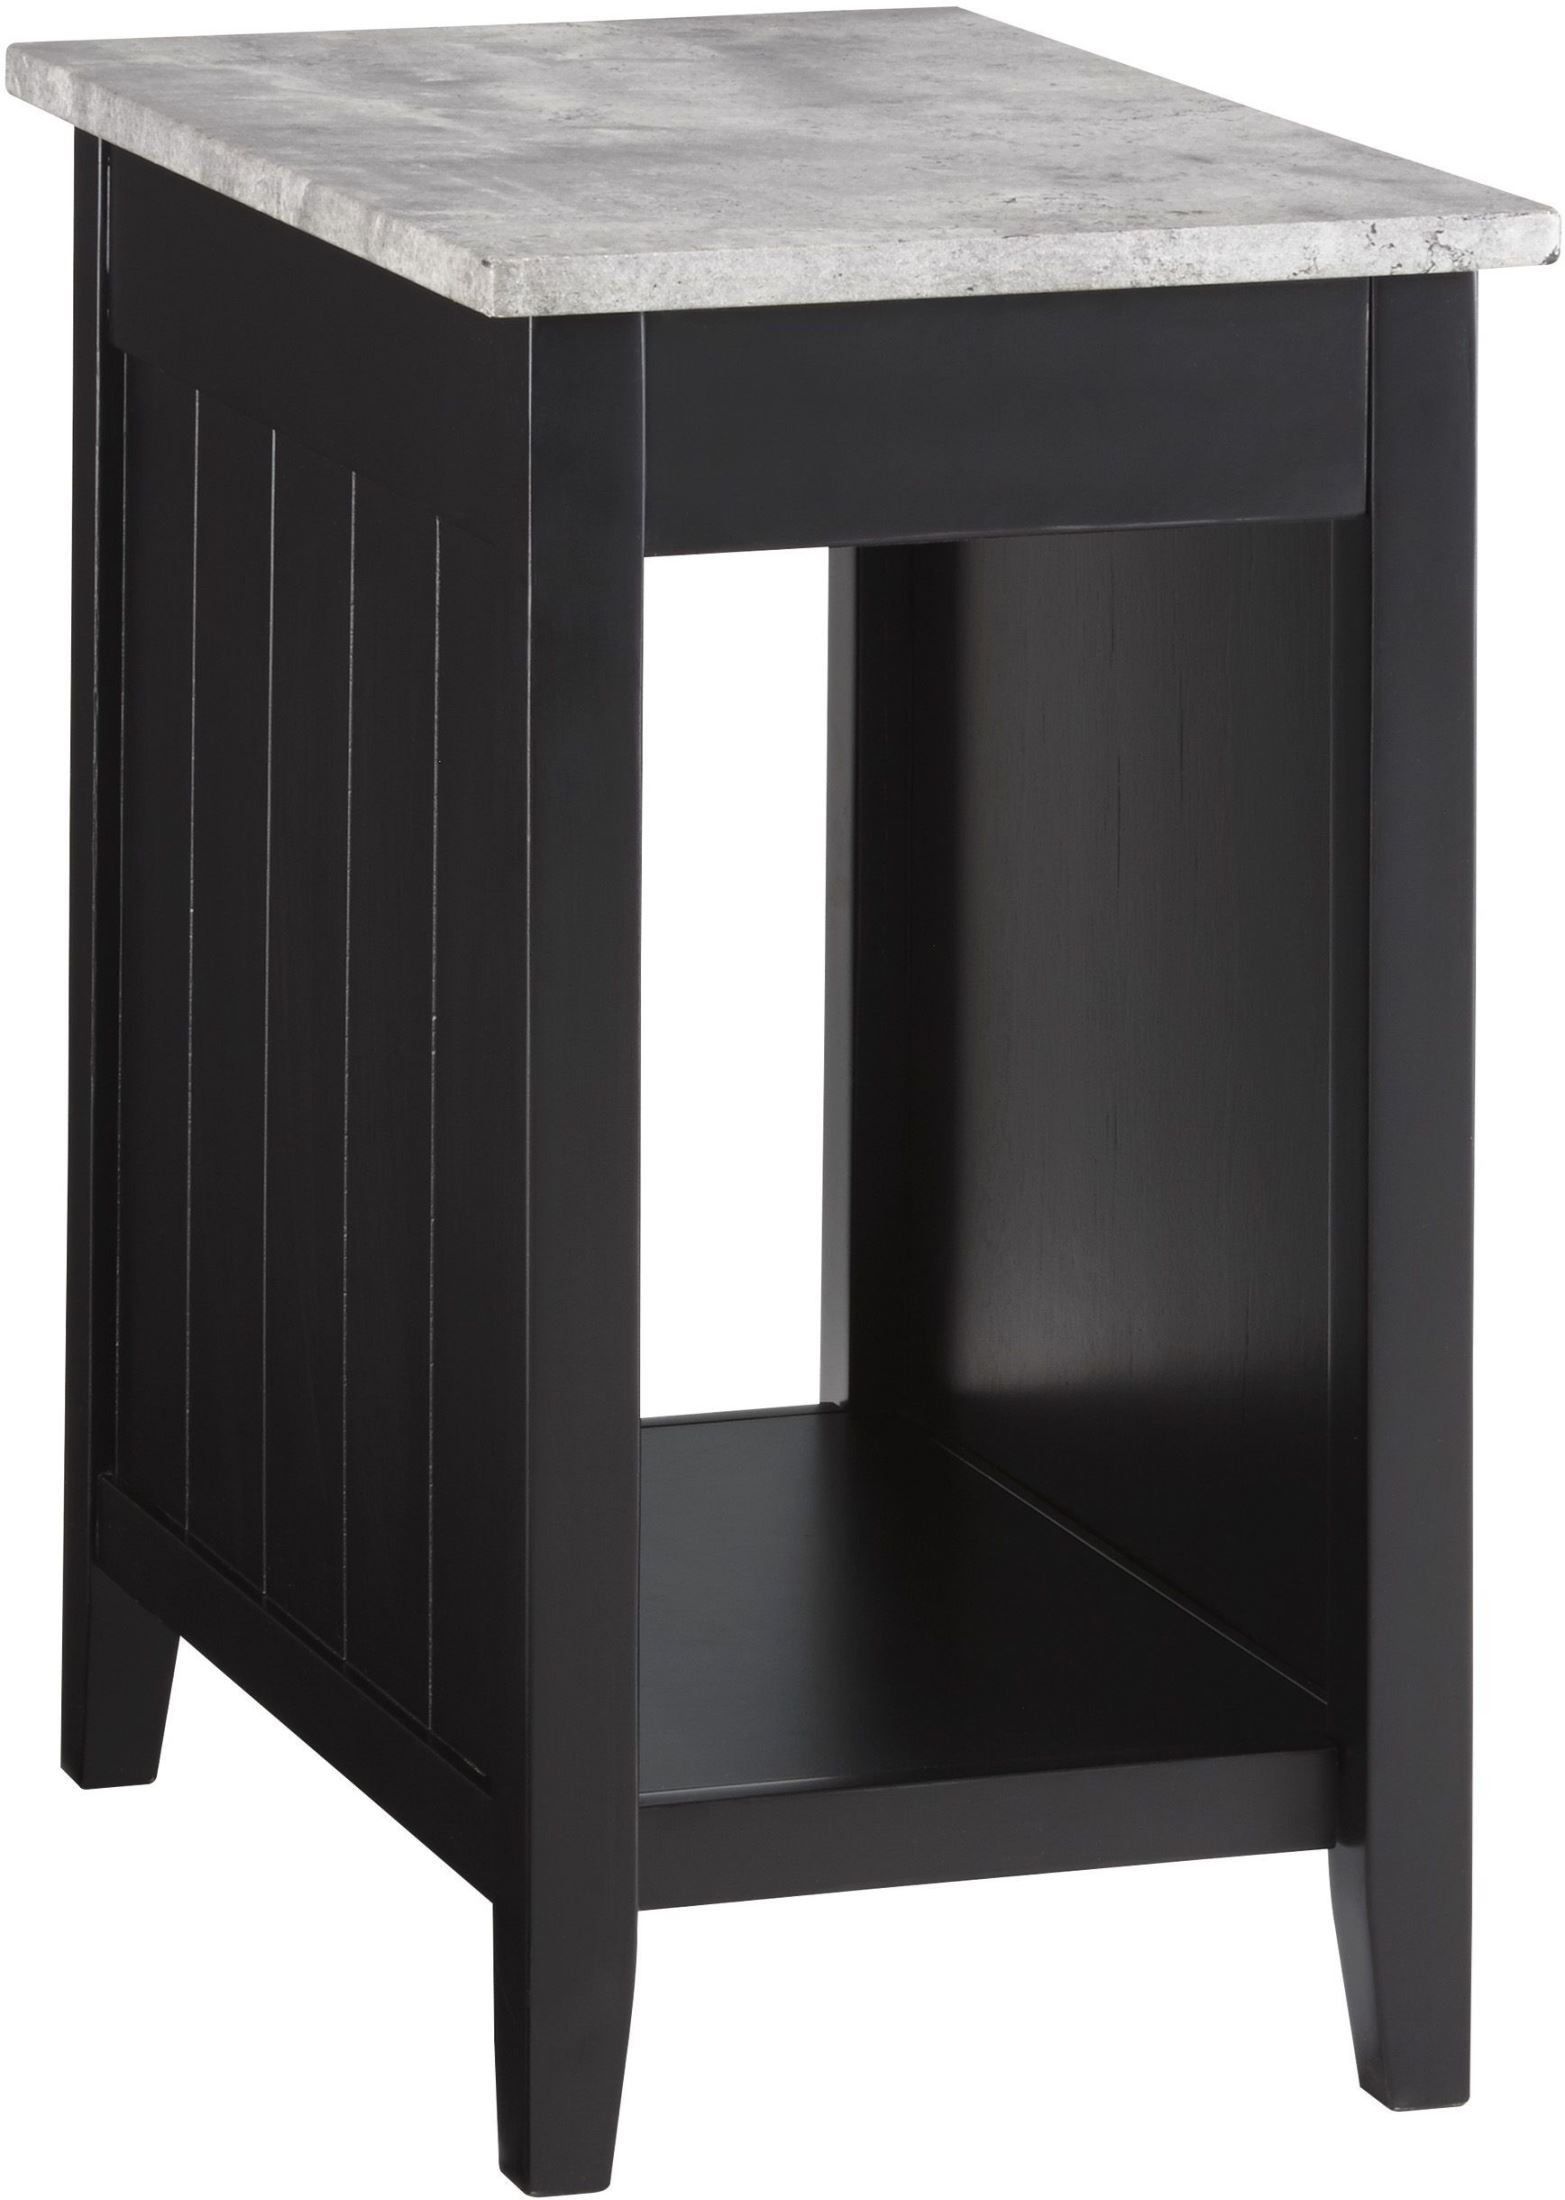 diamenton black and gray chair side end table from ashley. Black Bedroom Furniture Sets. Home Design Ideas